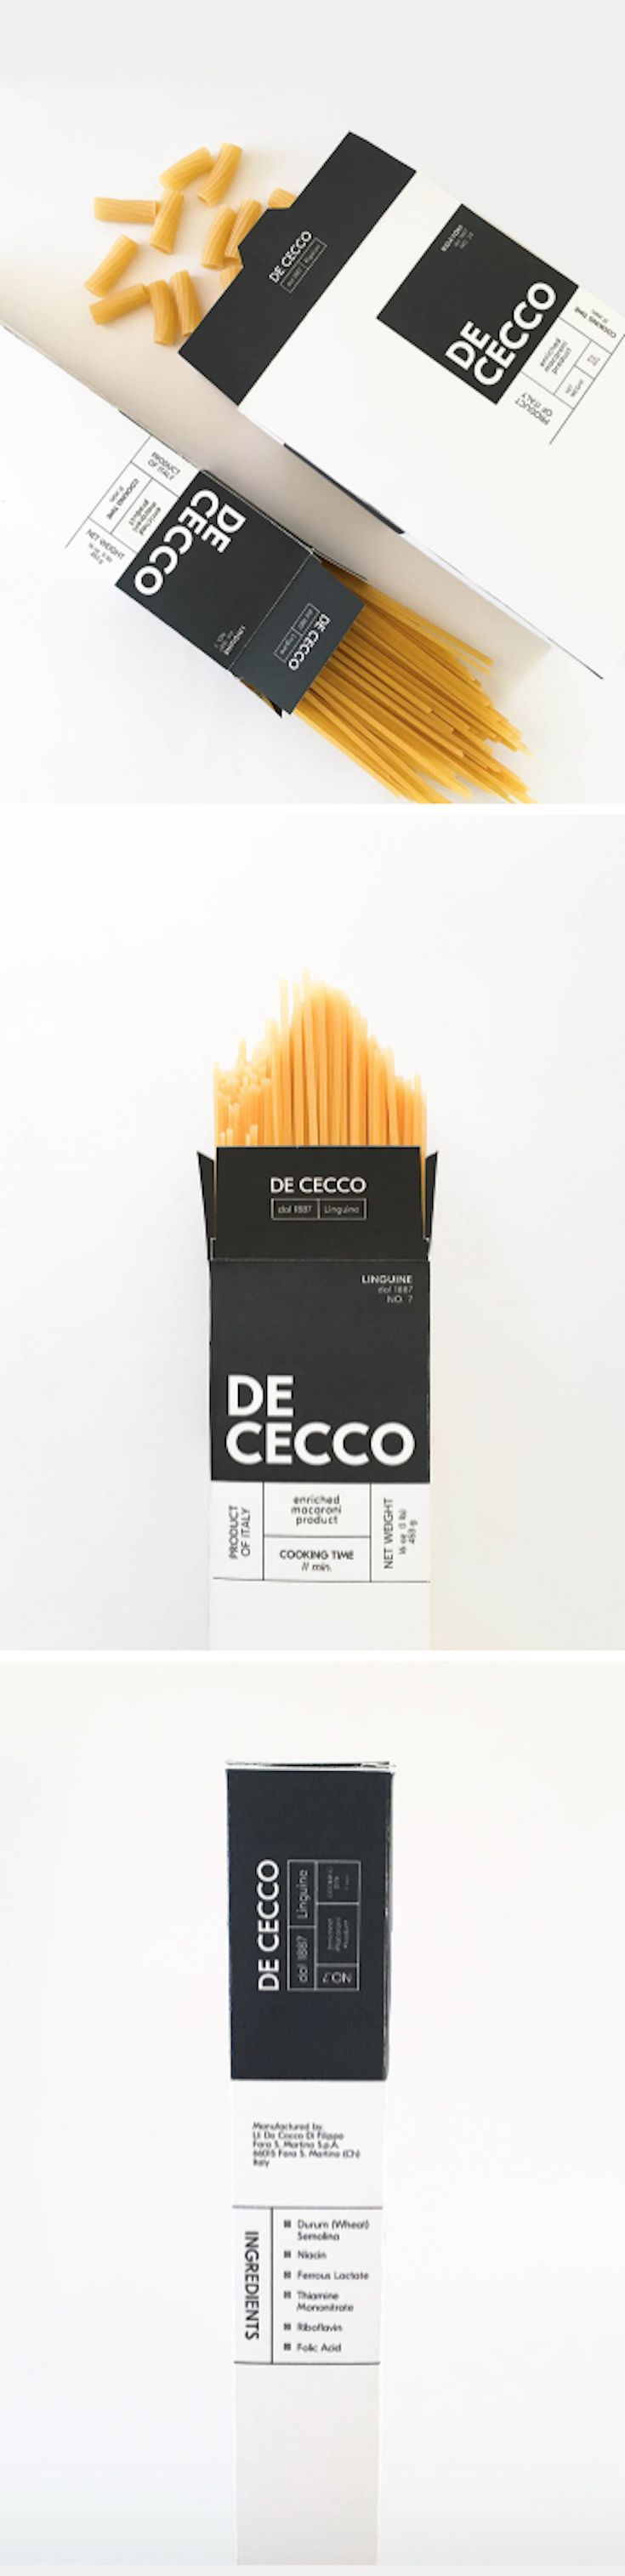 De Cecco Pasta Box packaging by Sarah Lee